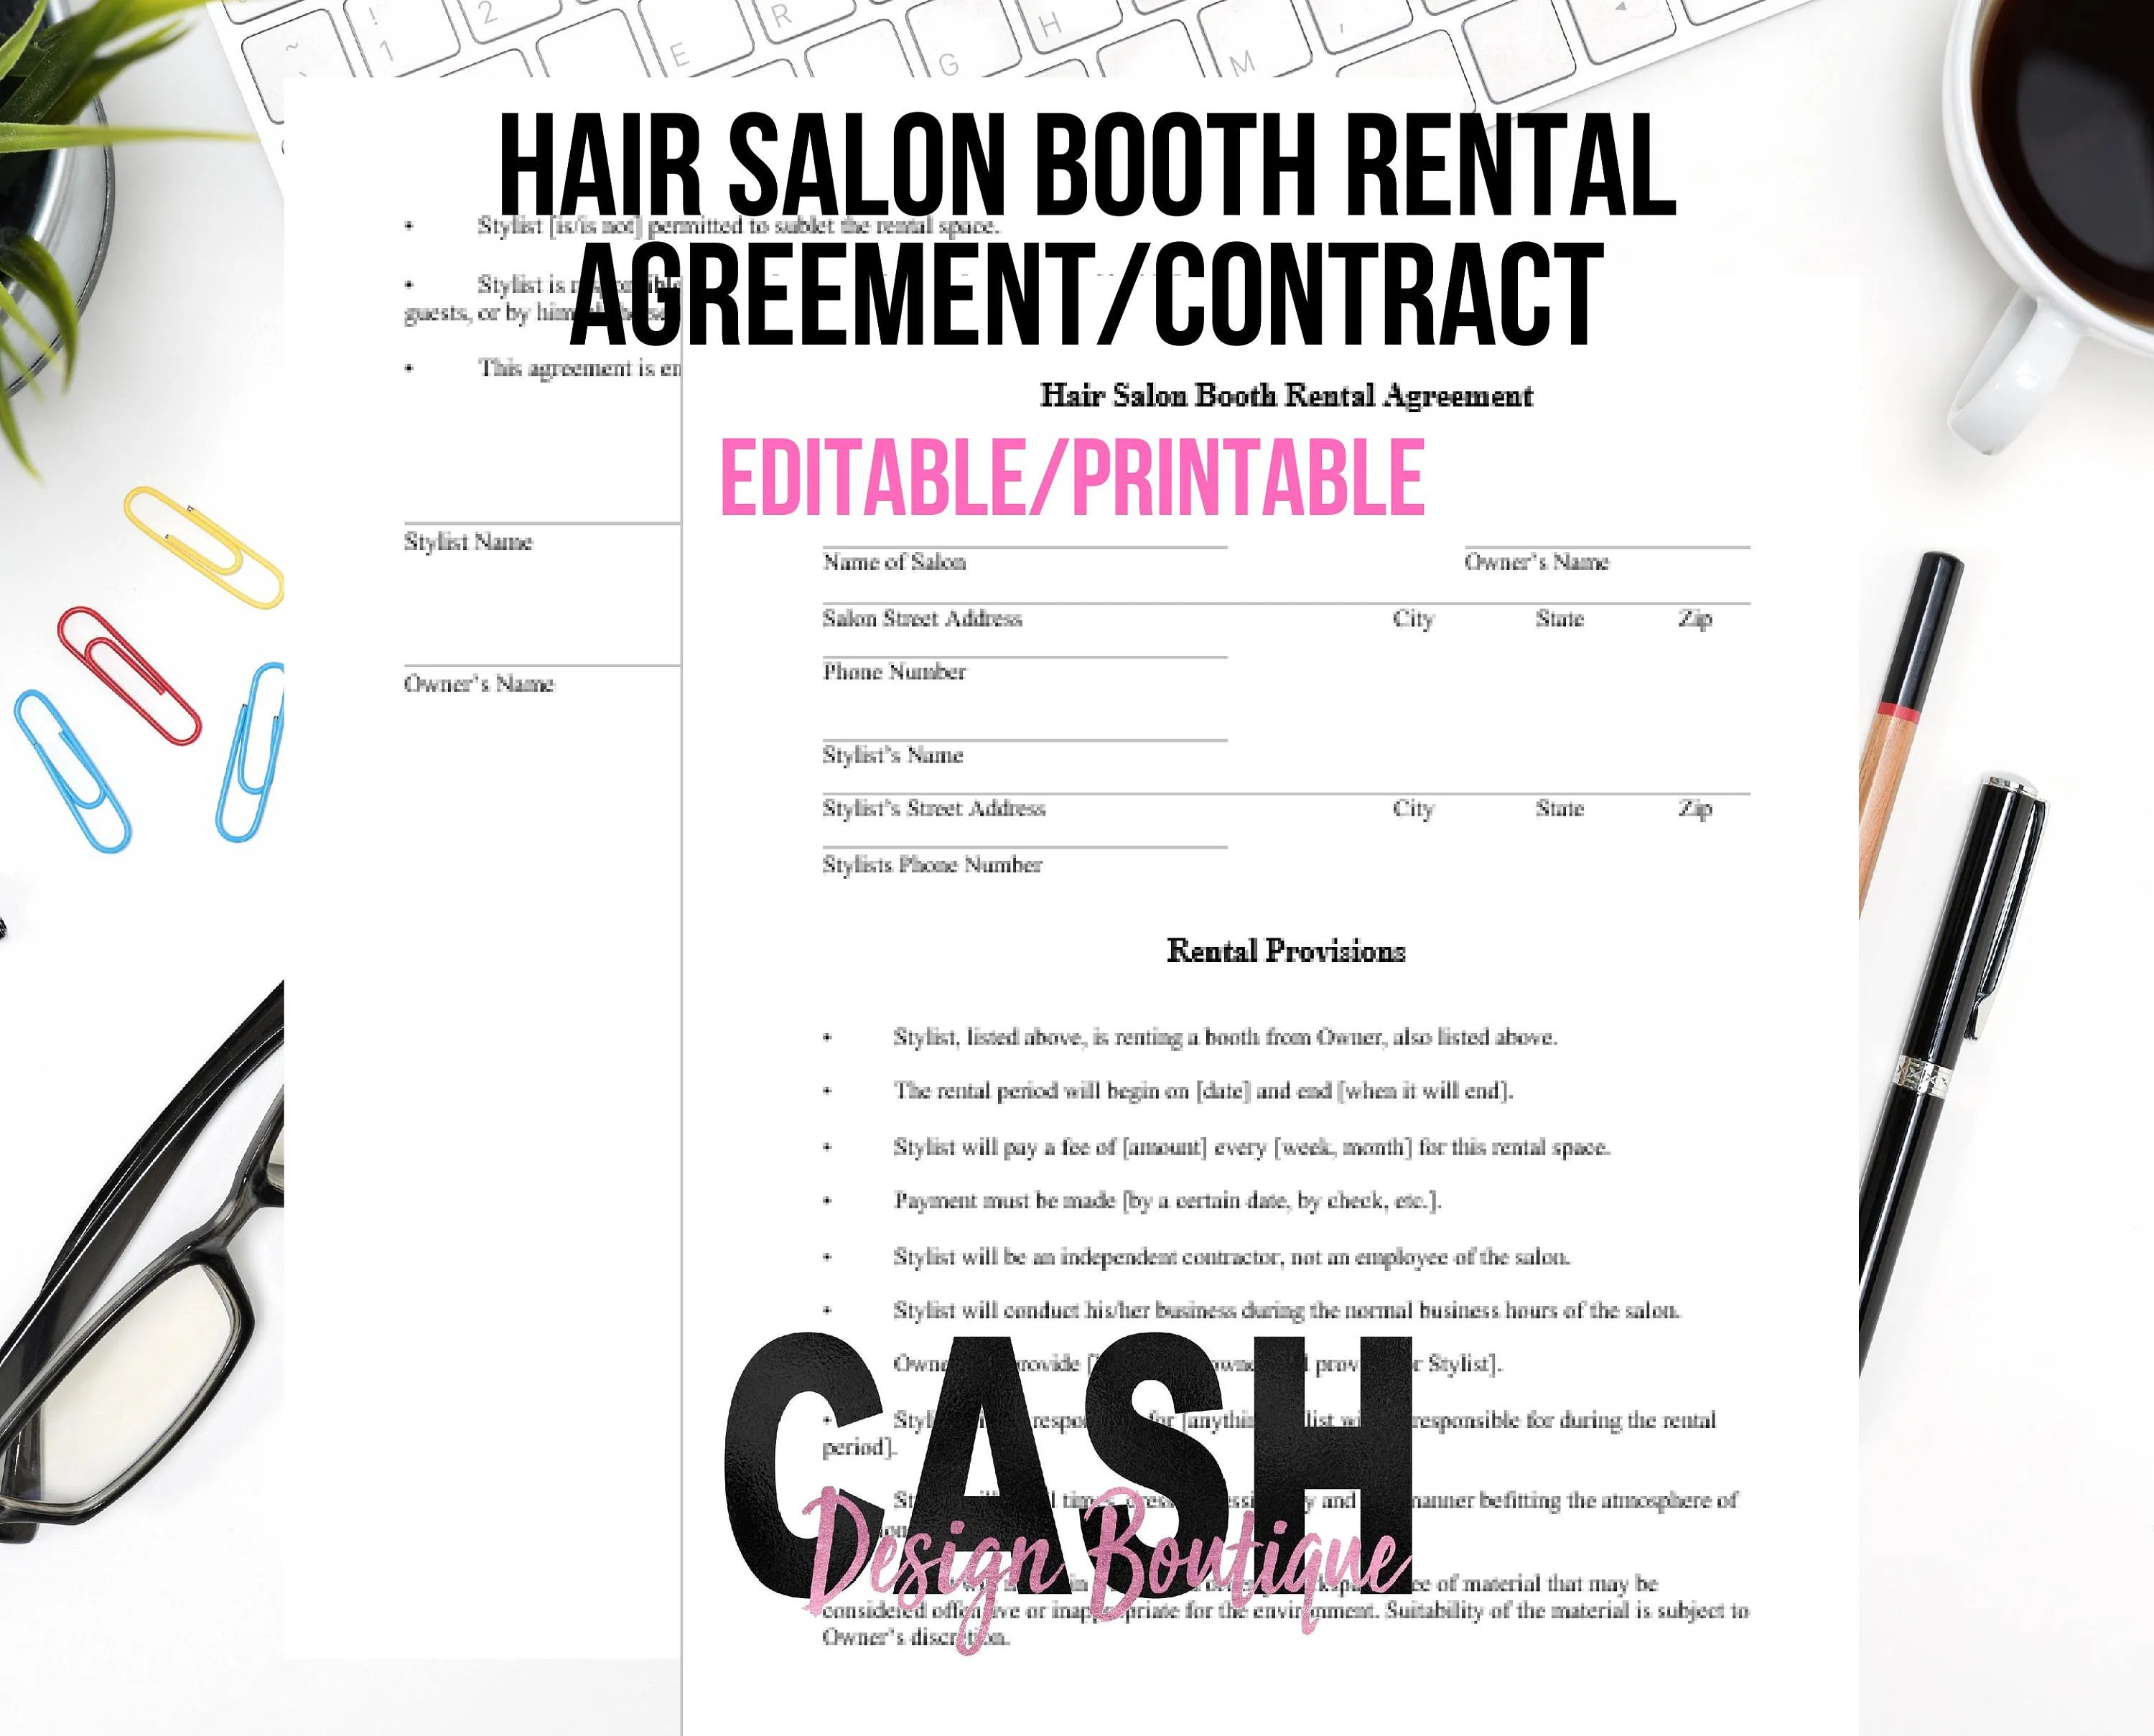 Hair Stylist Booth Rental Agreement/Contract Letter Size Etsy